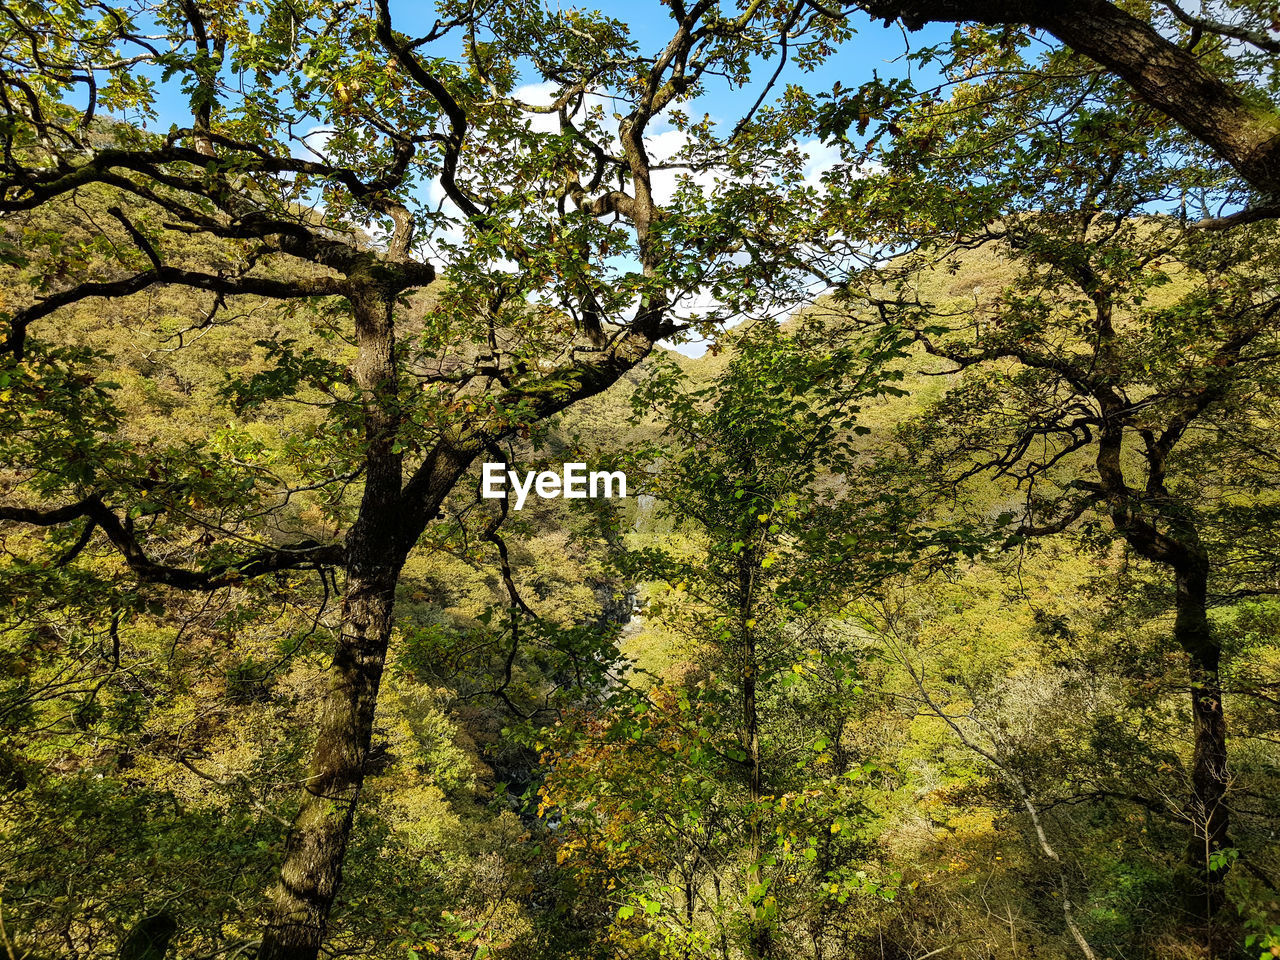 tree, plant, growth, forest, beauty in nature, nature, land, tranquility, no people, green color, branch, environment, day, tranquil scene, scenics - nature, non-urban scene, foliage, outdoors, landscape, lush foliage, woodland